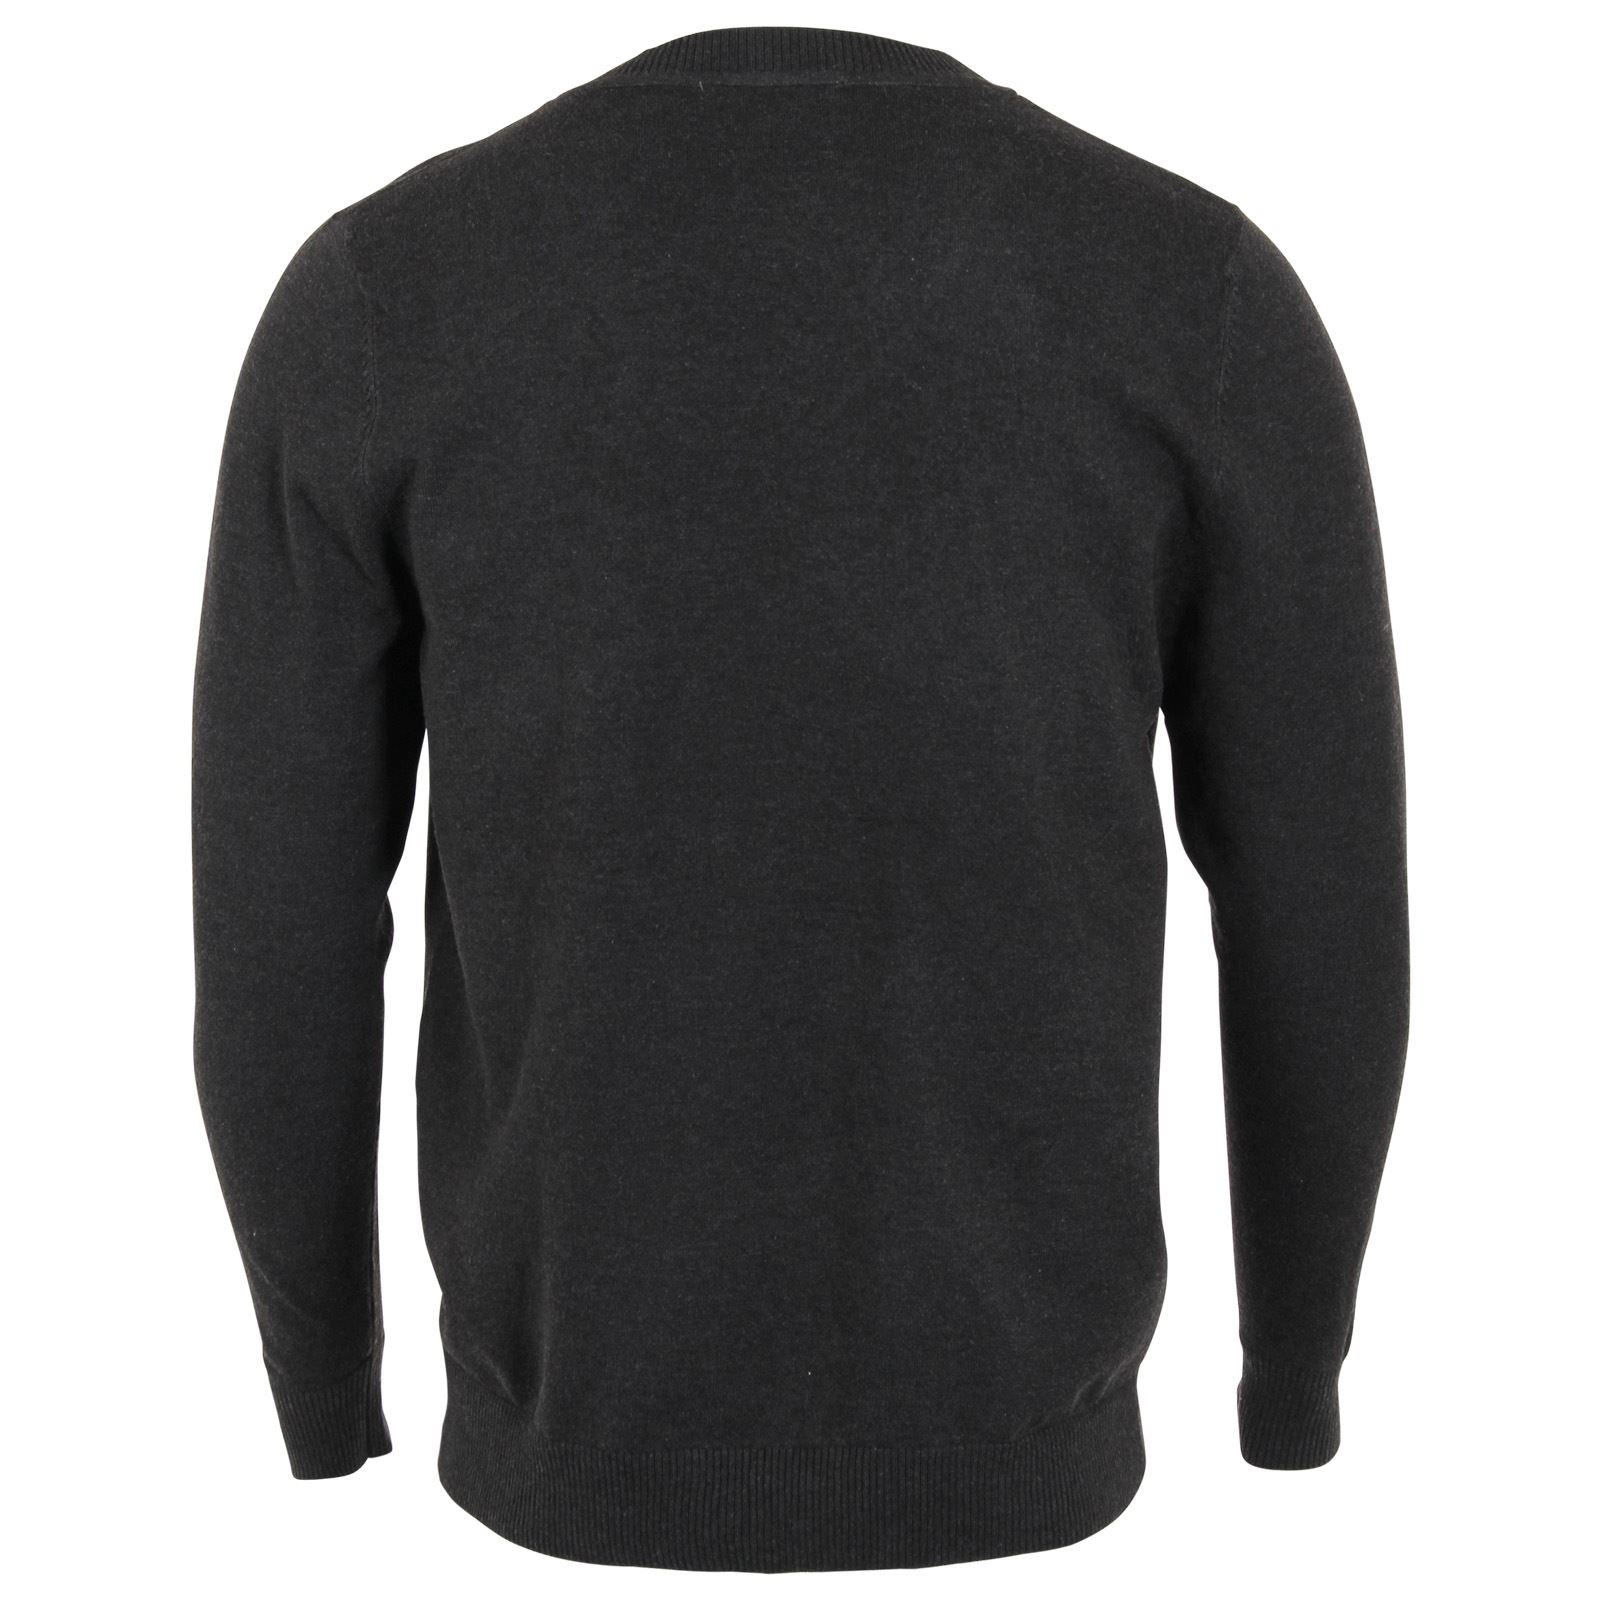 Mens Plain Colour Thin Knit V Neck Fashion Knitted Jumper Sweater Top Pullover